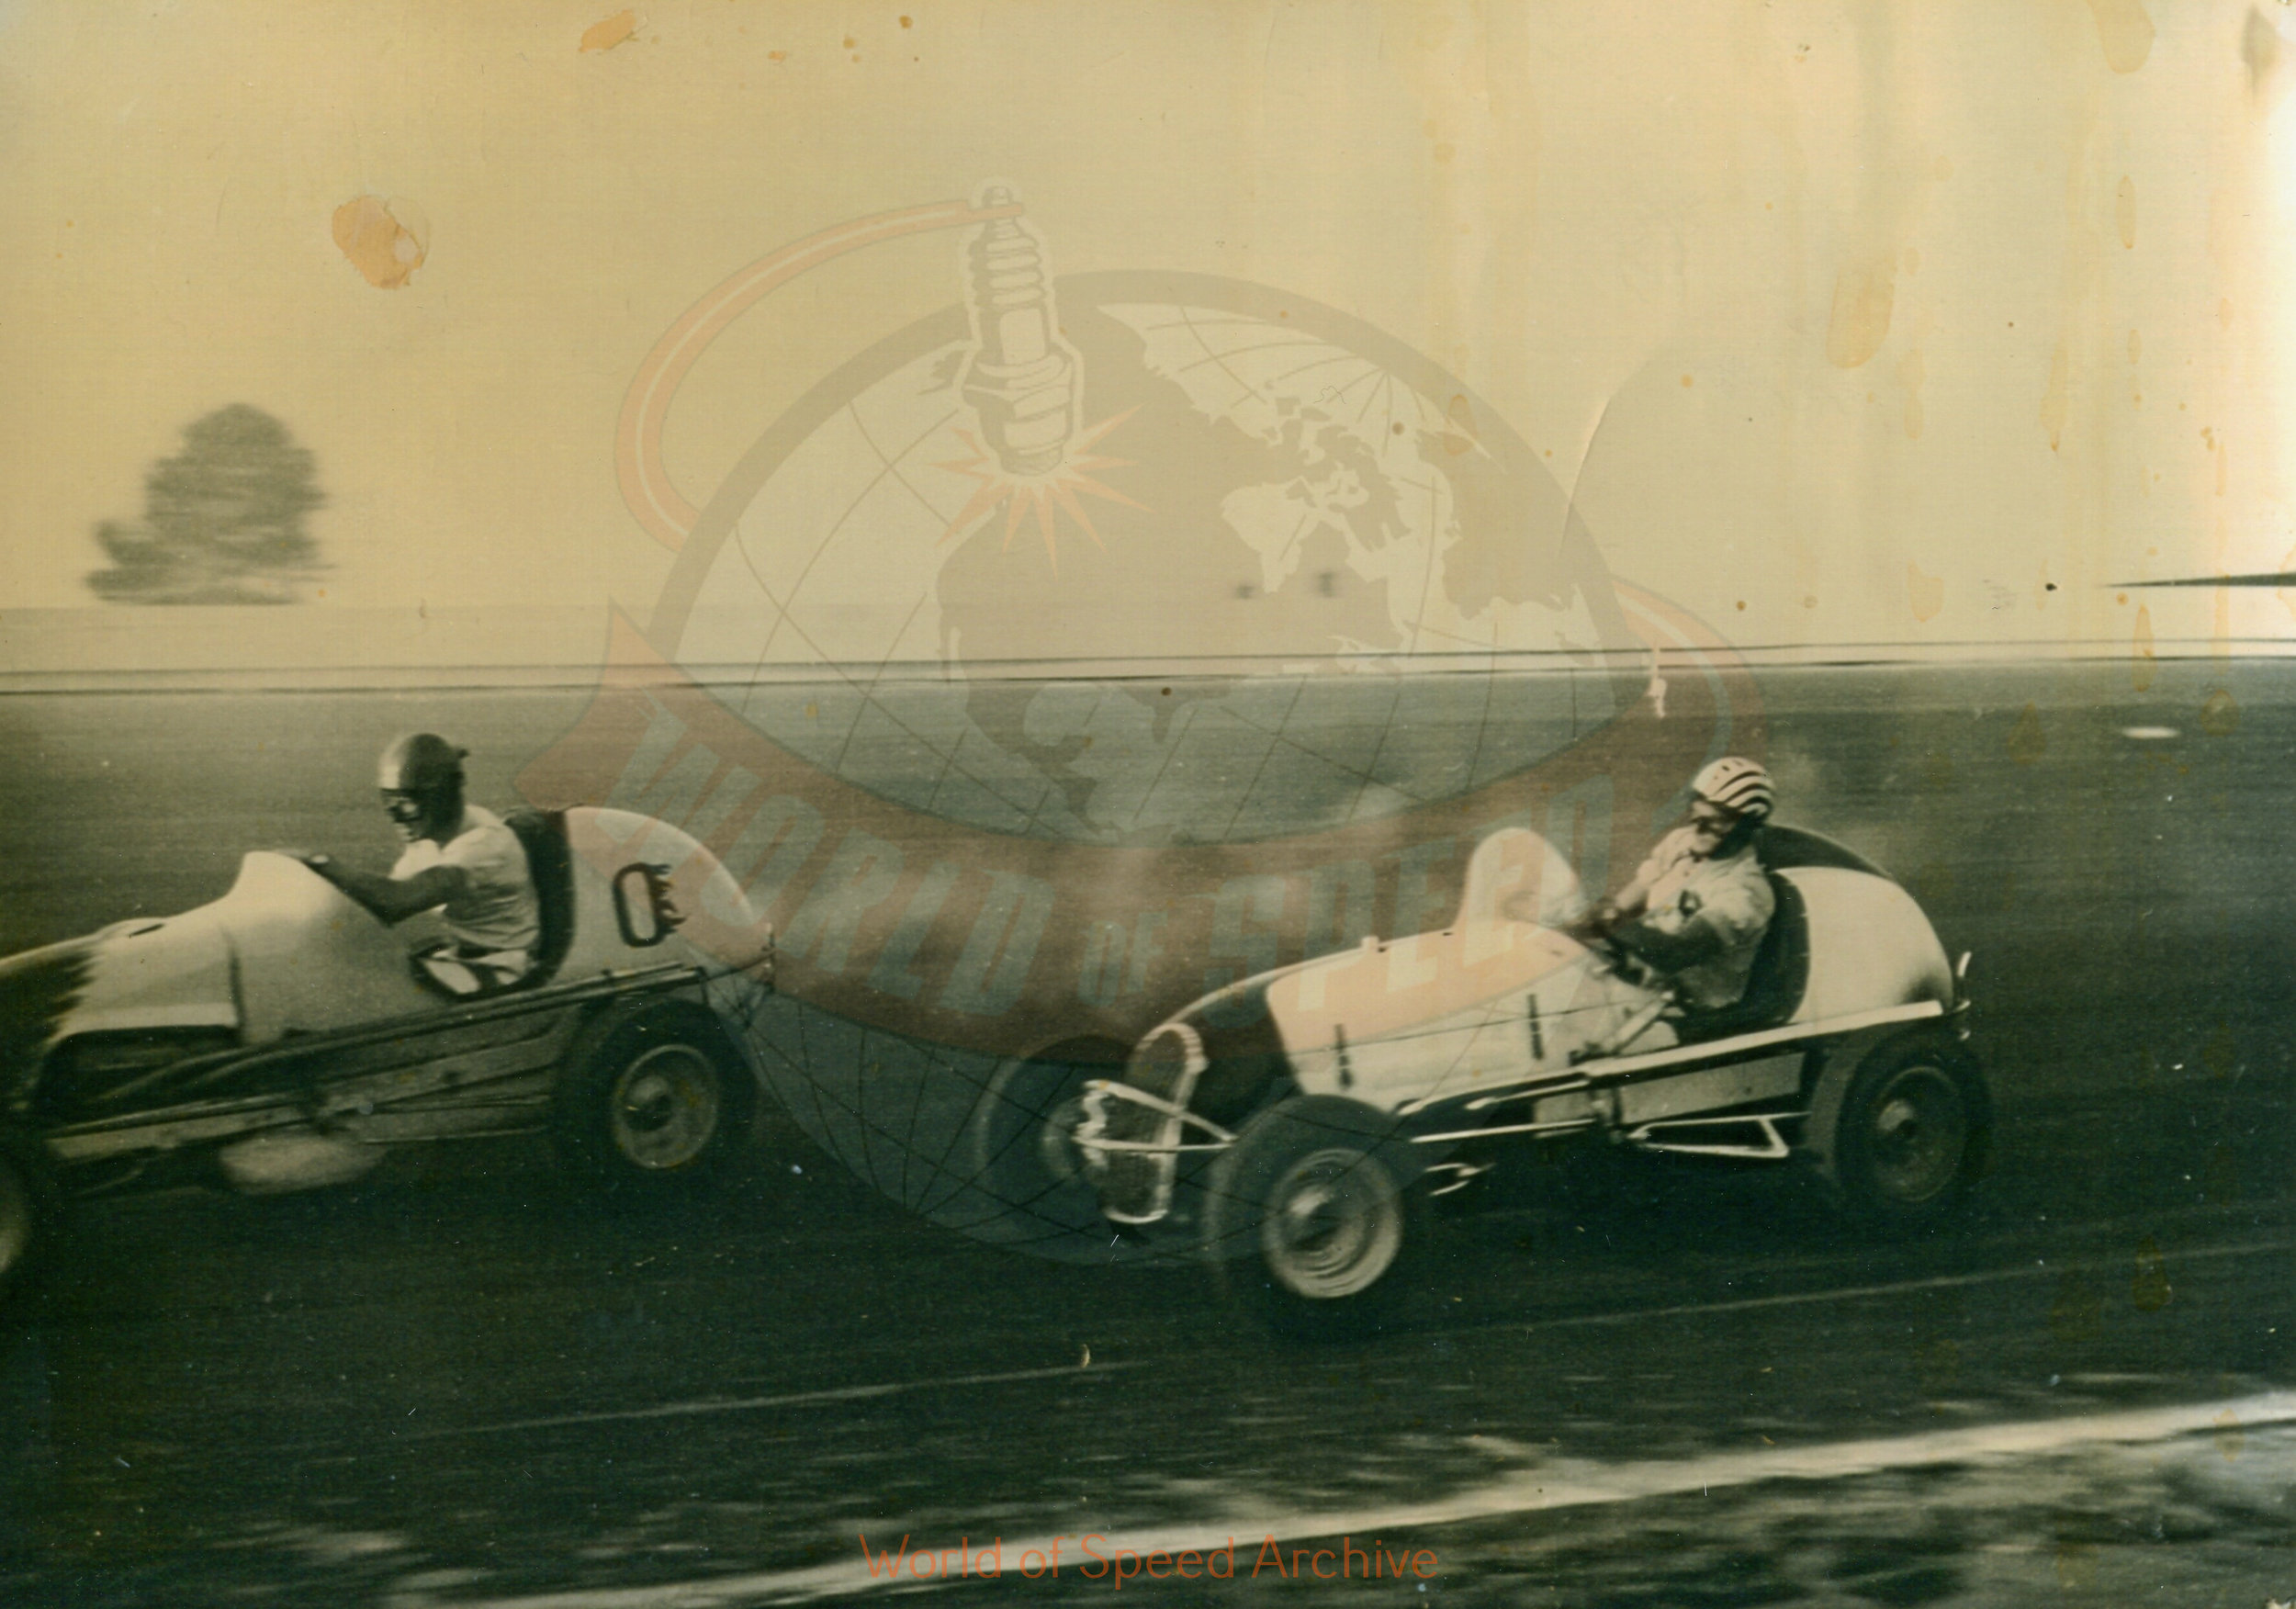 Hildick Photo Collection WOS#5072, BH009  Received submission:  #0 Stocky Stockwell; C33 Don Farmer (ID by drivers helmet)